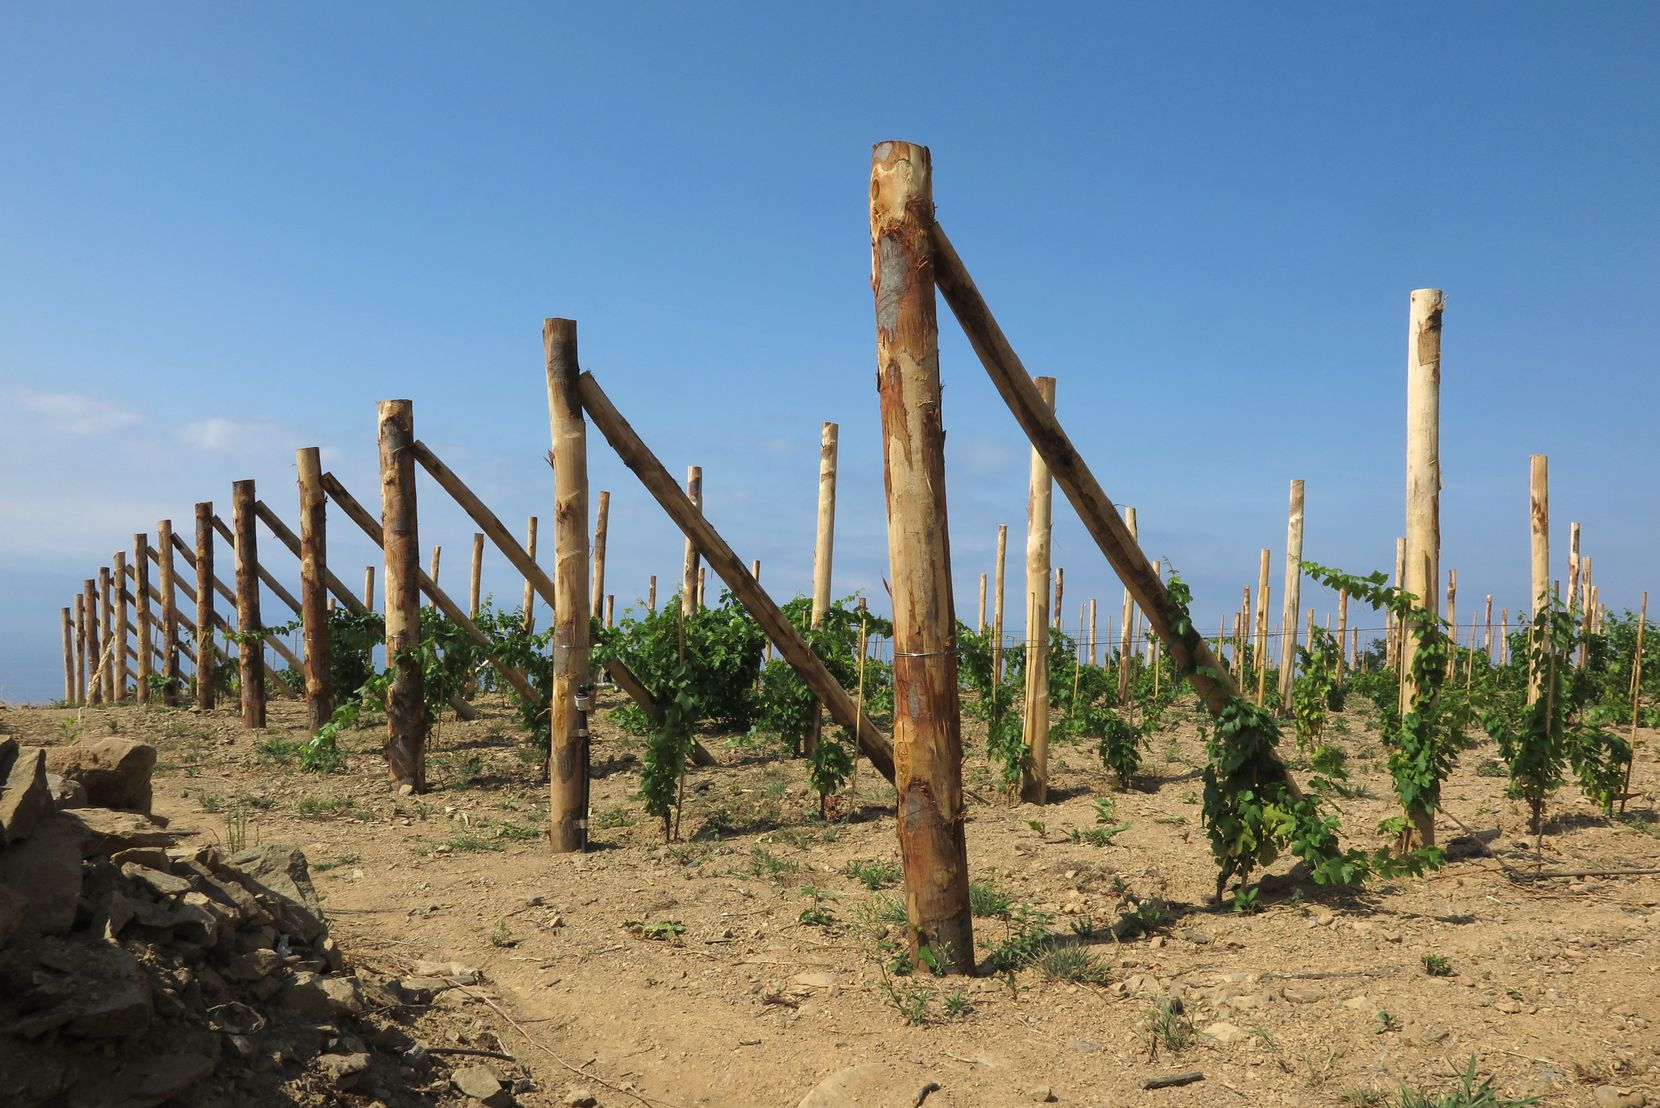 Young vines high up in the Cinque Terre hills give hope that this Italian region's winemaking tradition will continue.